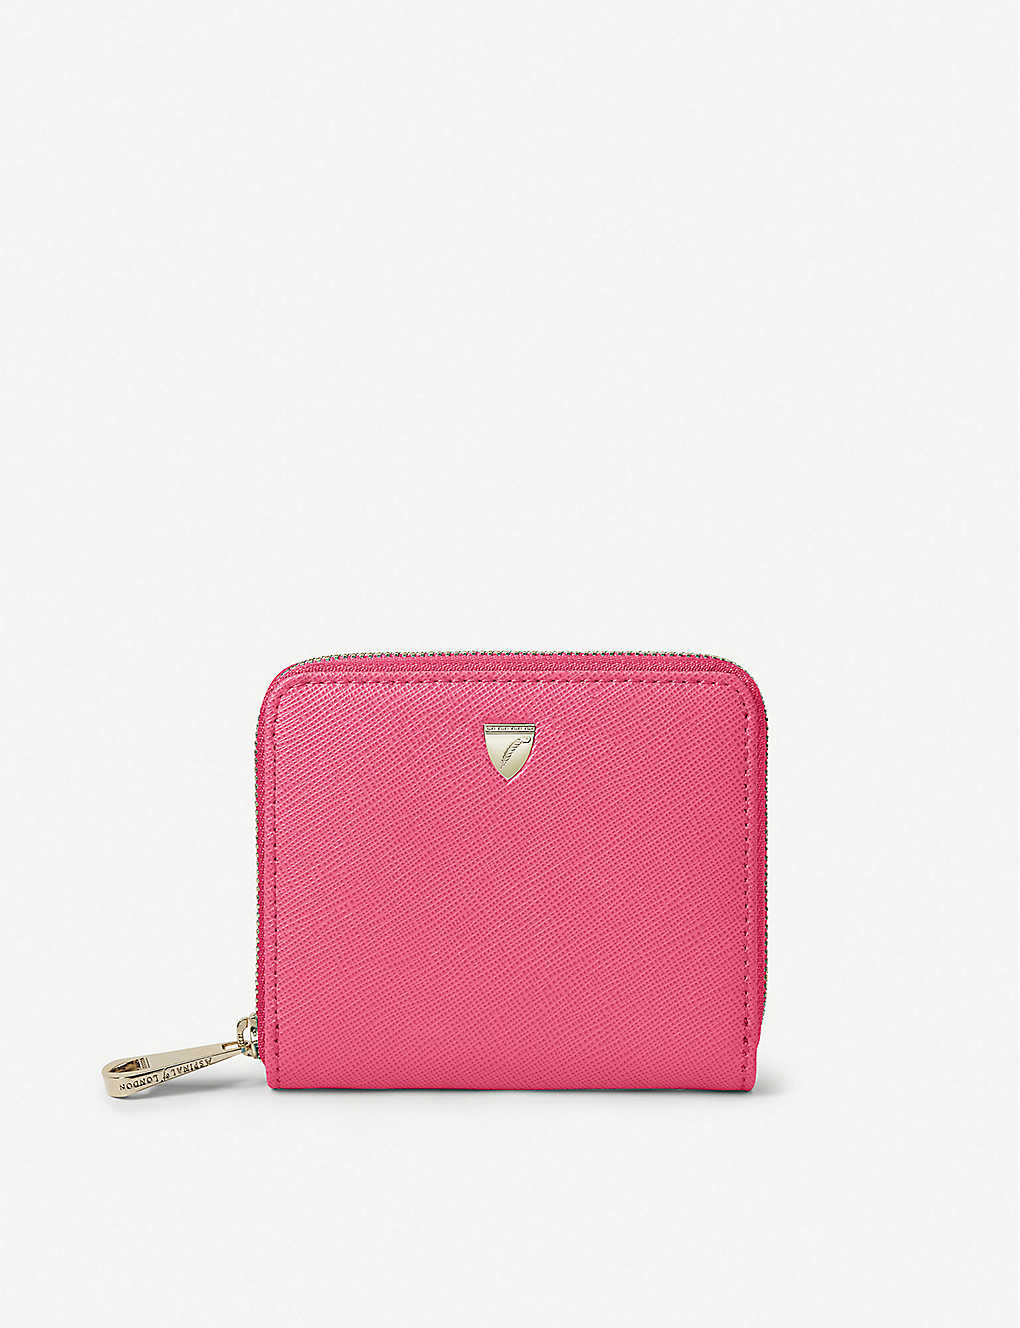 ASPINAL OF LONDON: Slim Mini Continental leather purse